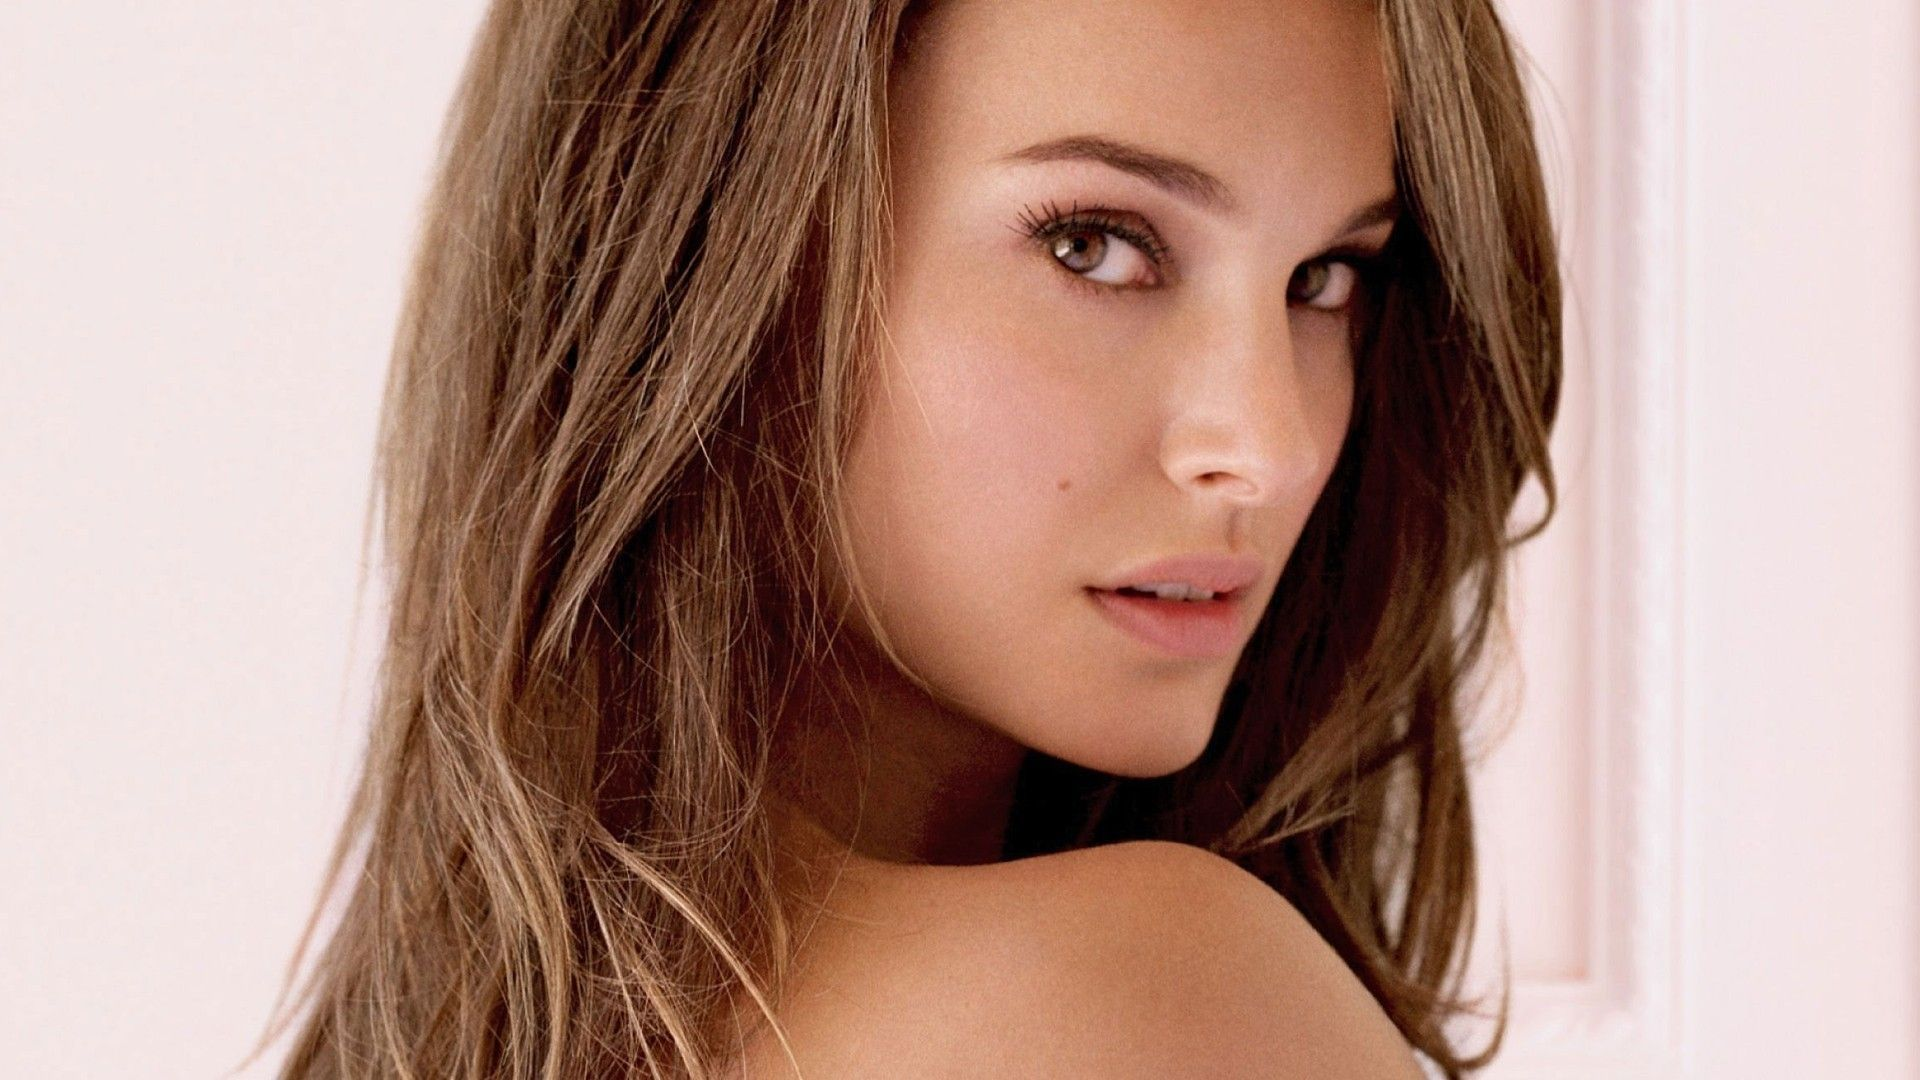 Natalie Portman Latest HD Wallpapers Free Download